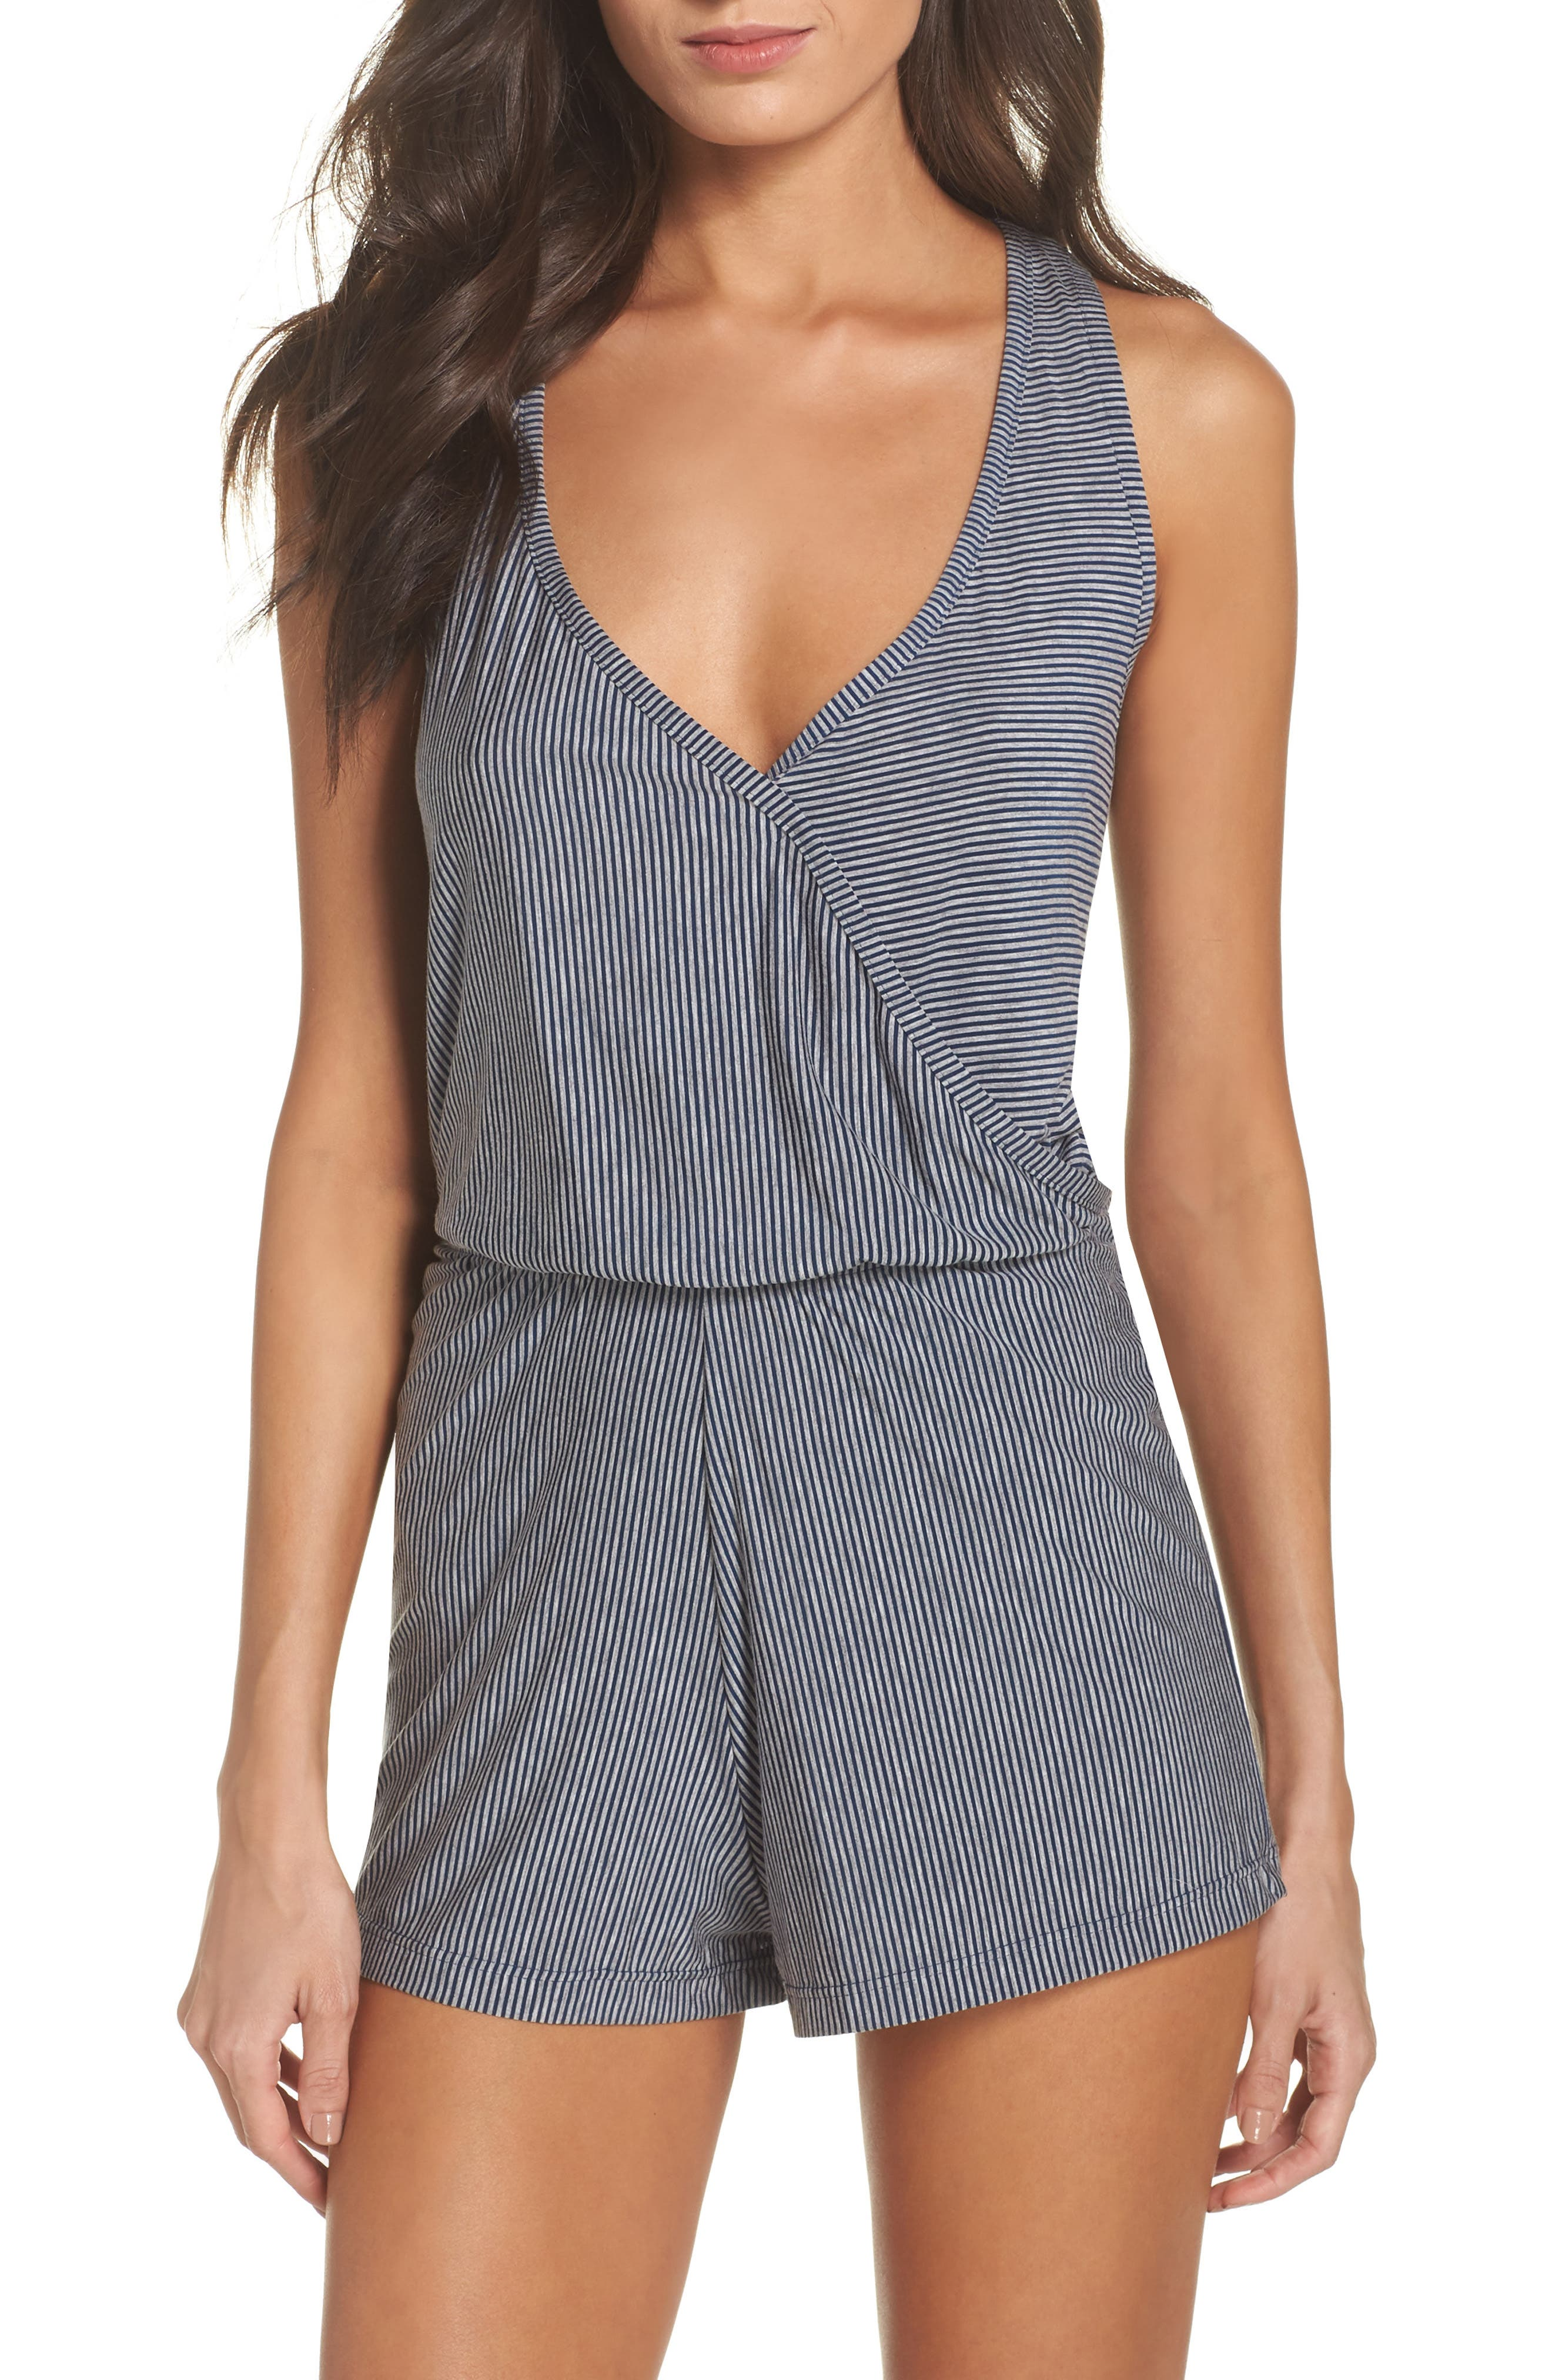 Amalfi Cross Back Romper,                         Main,                         color, Heather Grey/ Navy